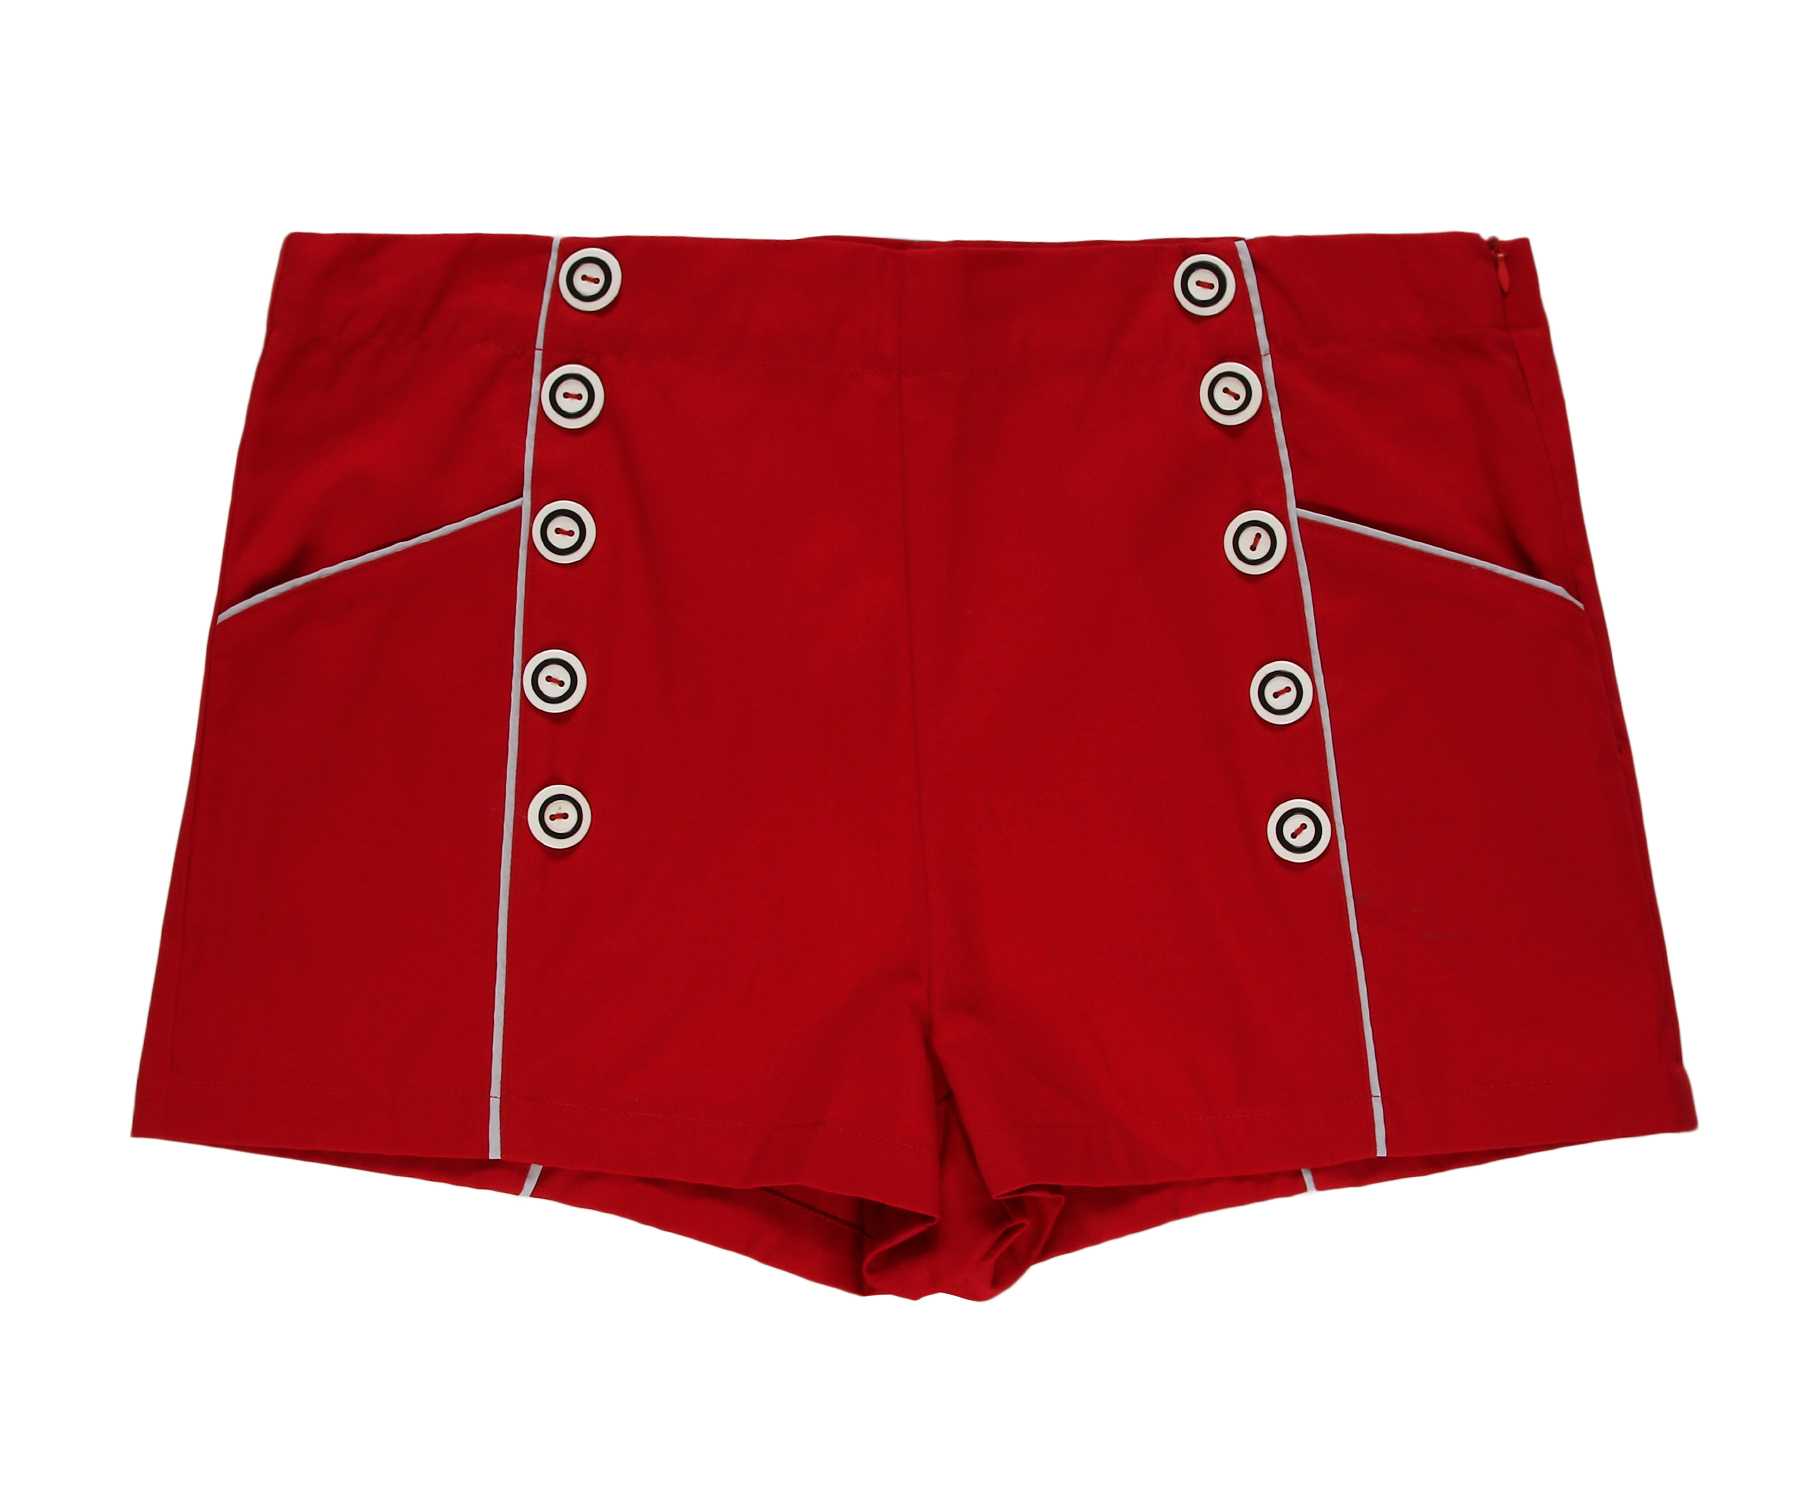 Women 2018 Hot Selling High Waisted Red Shorts With Button Detail 50's Vintage Rockabilly Pin Up Retro Hotpants free shipping